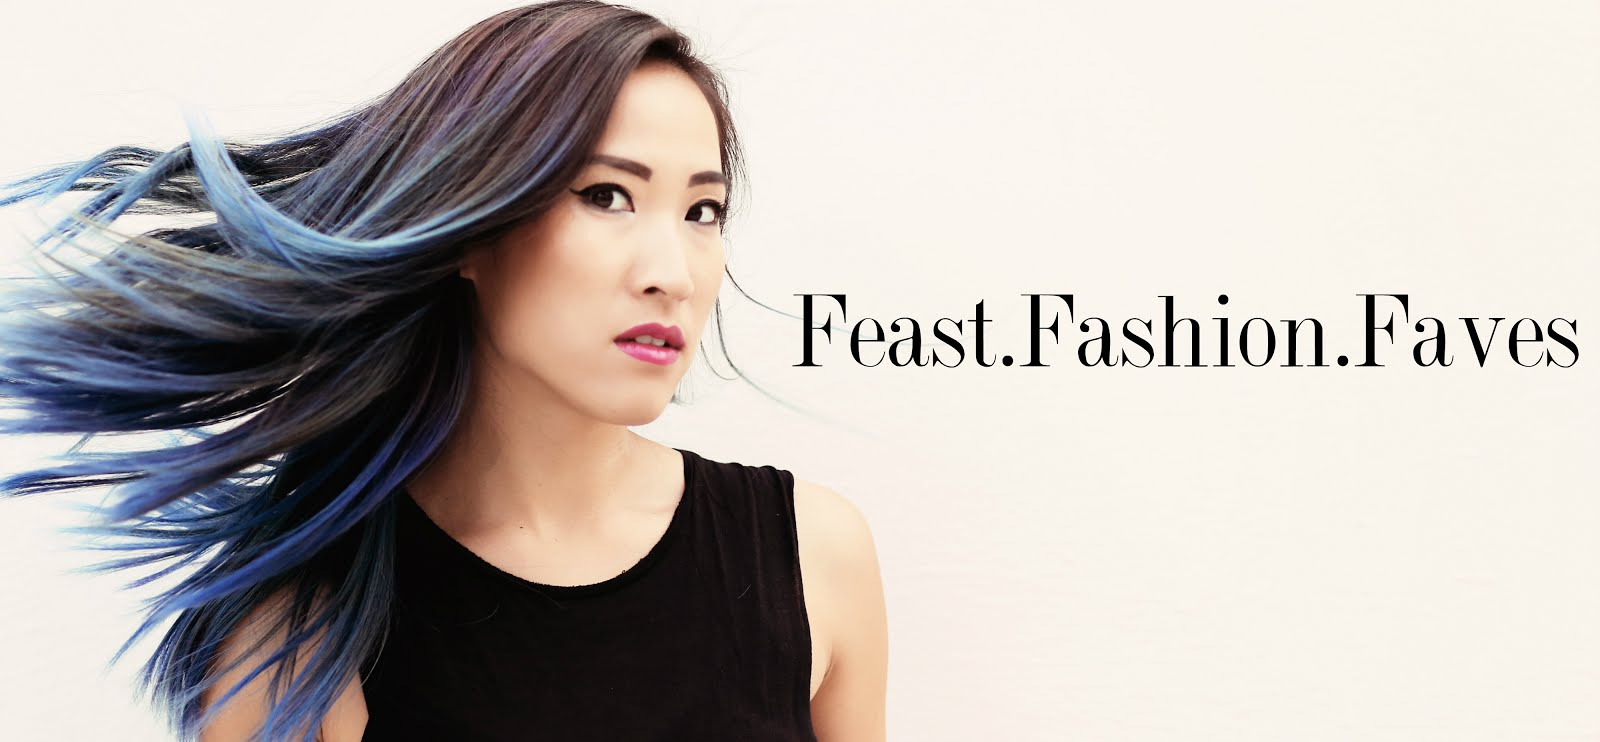 Feast Fashion Faves